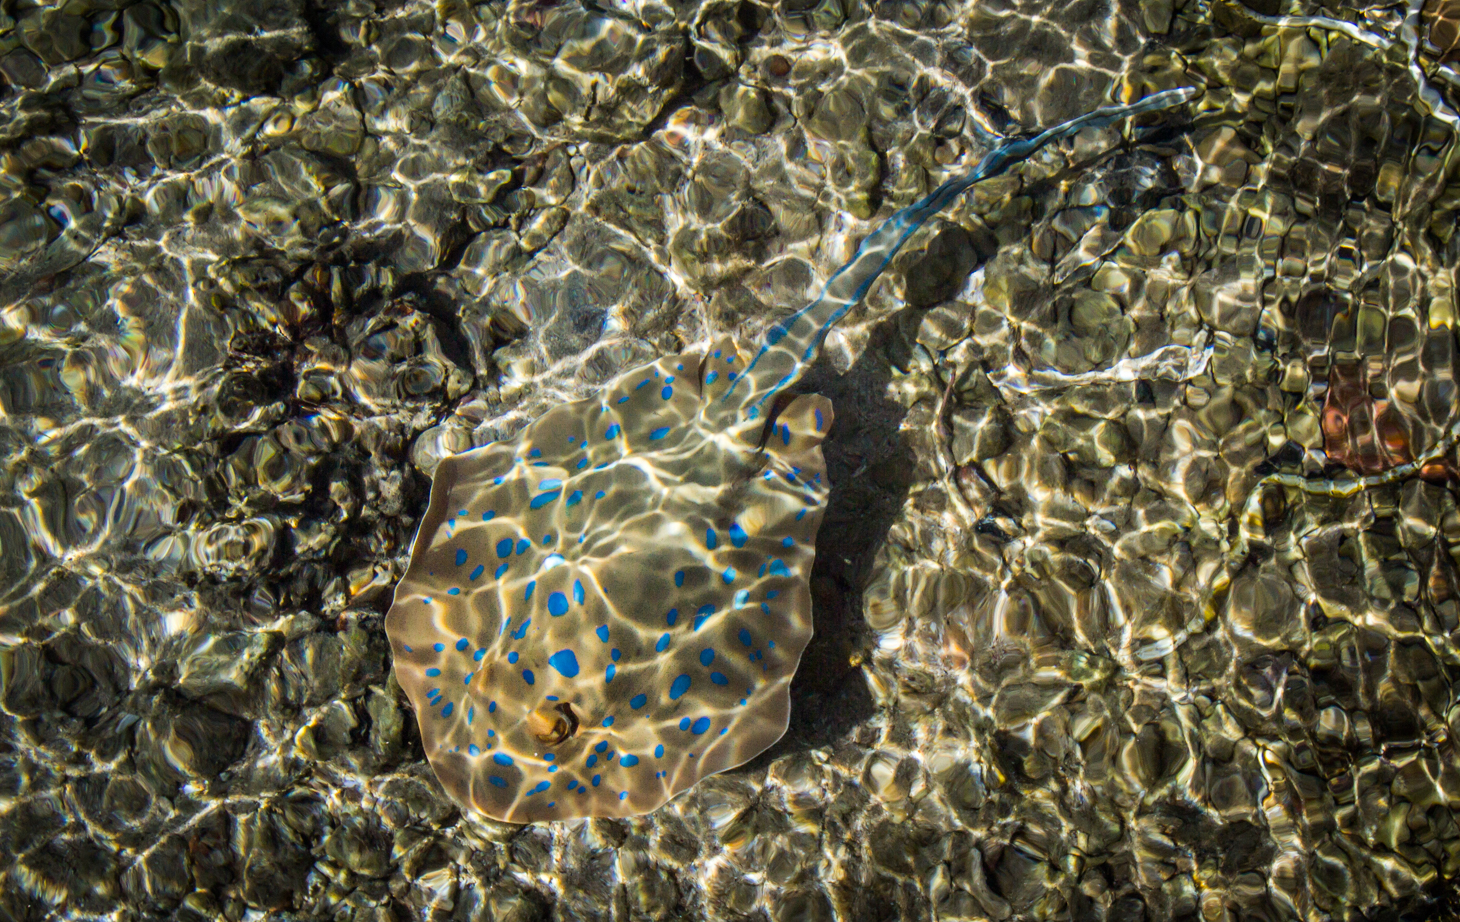 Our resident spotted ray who lives beneath our pier at Aurora Bay...